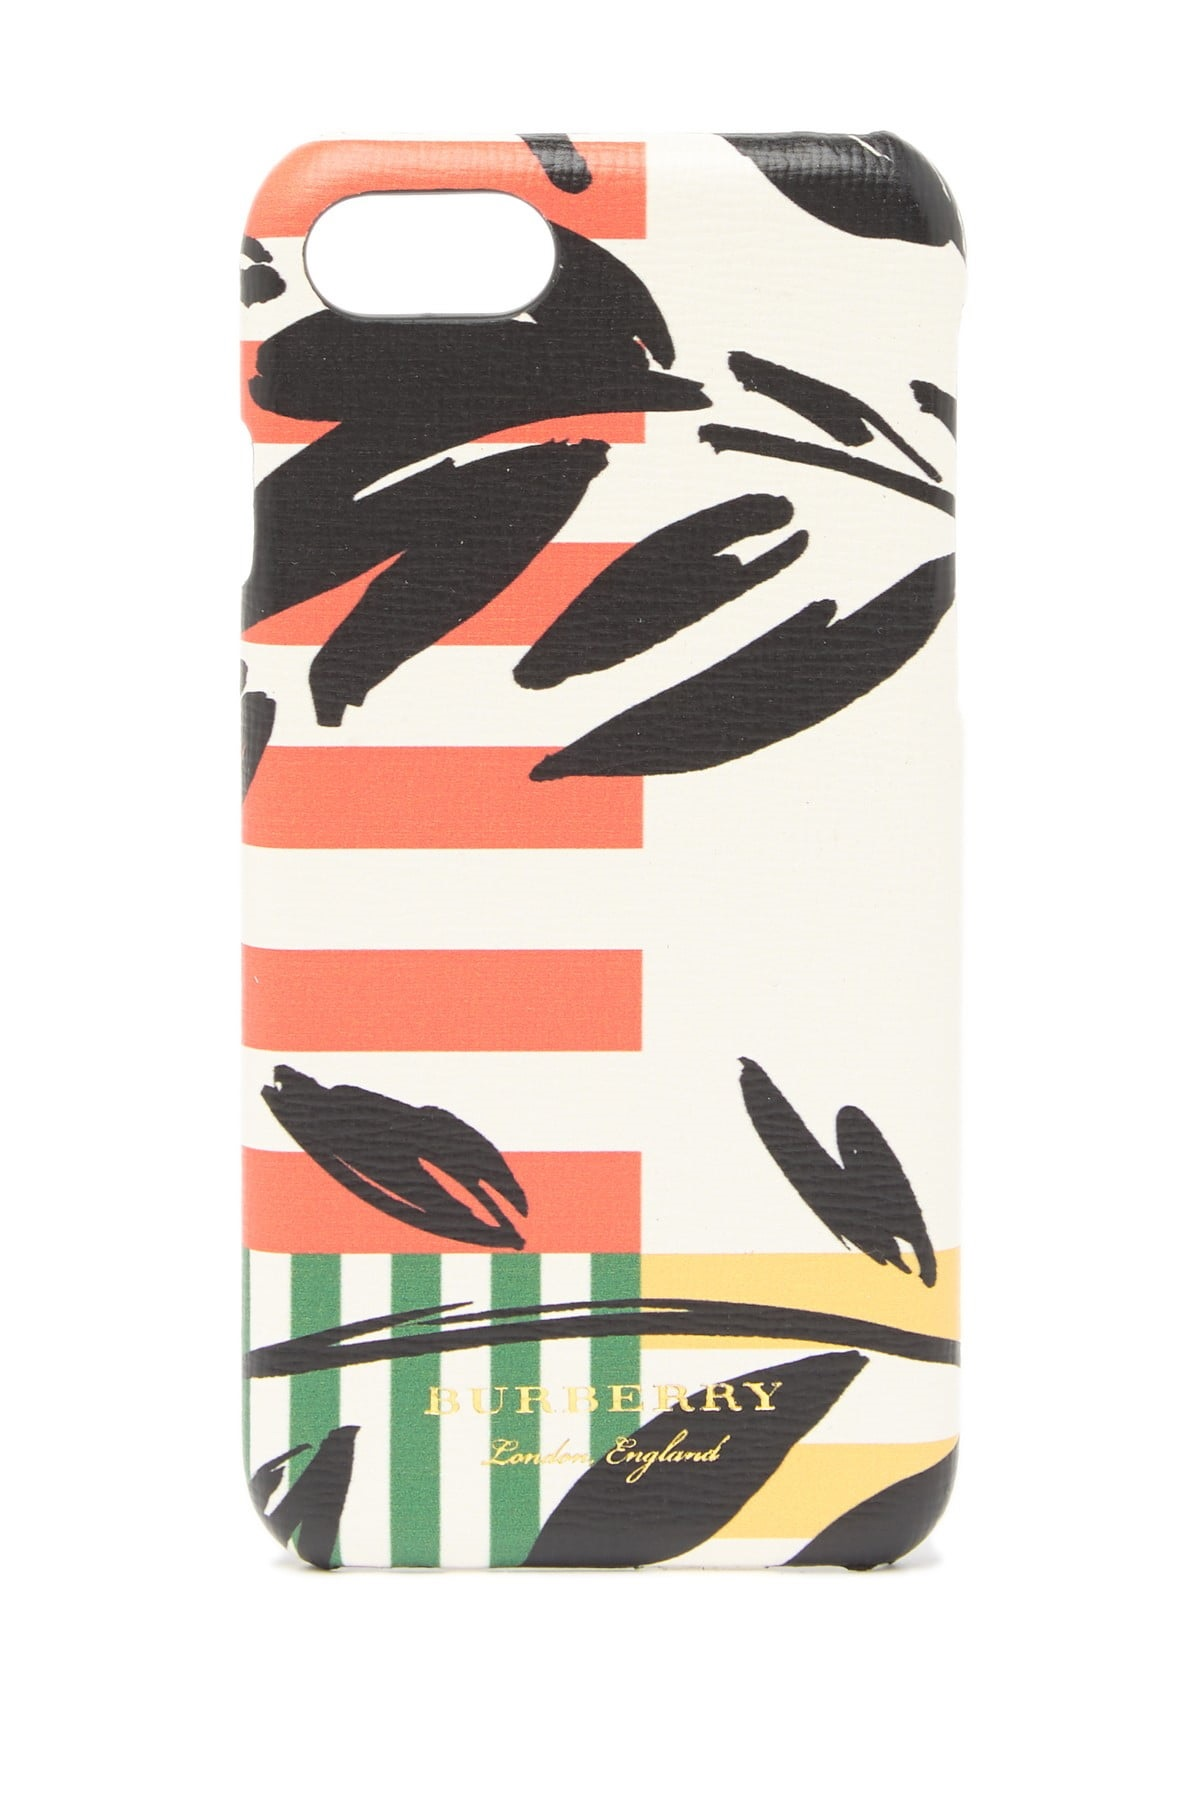 Burberry Patchwork Floral Rufus Iphone 8 Case In N,a